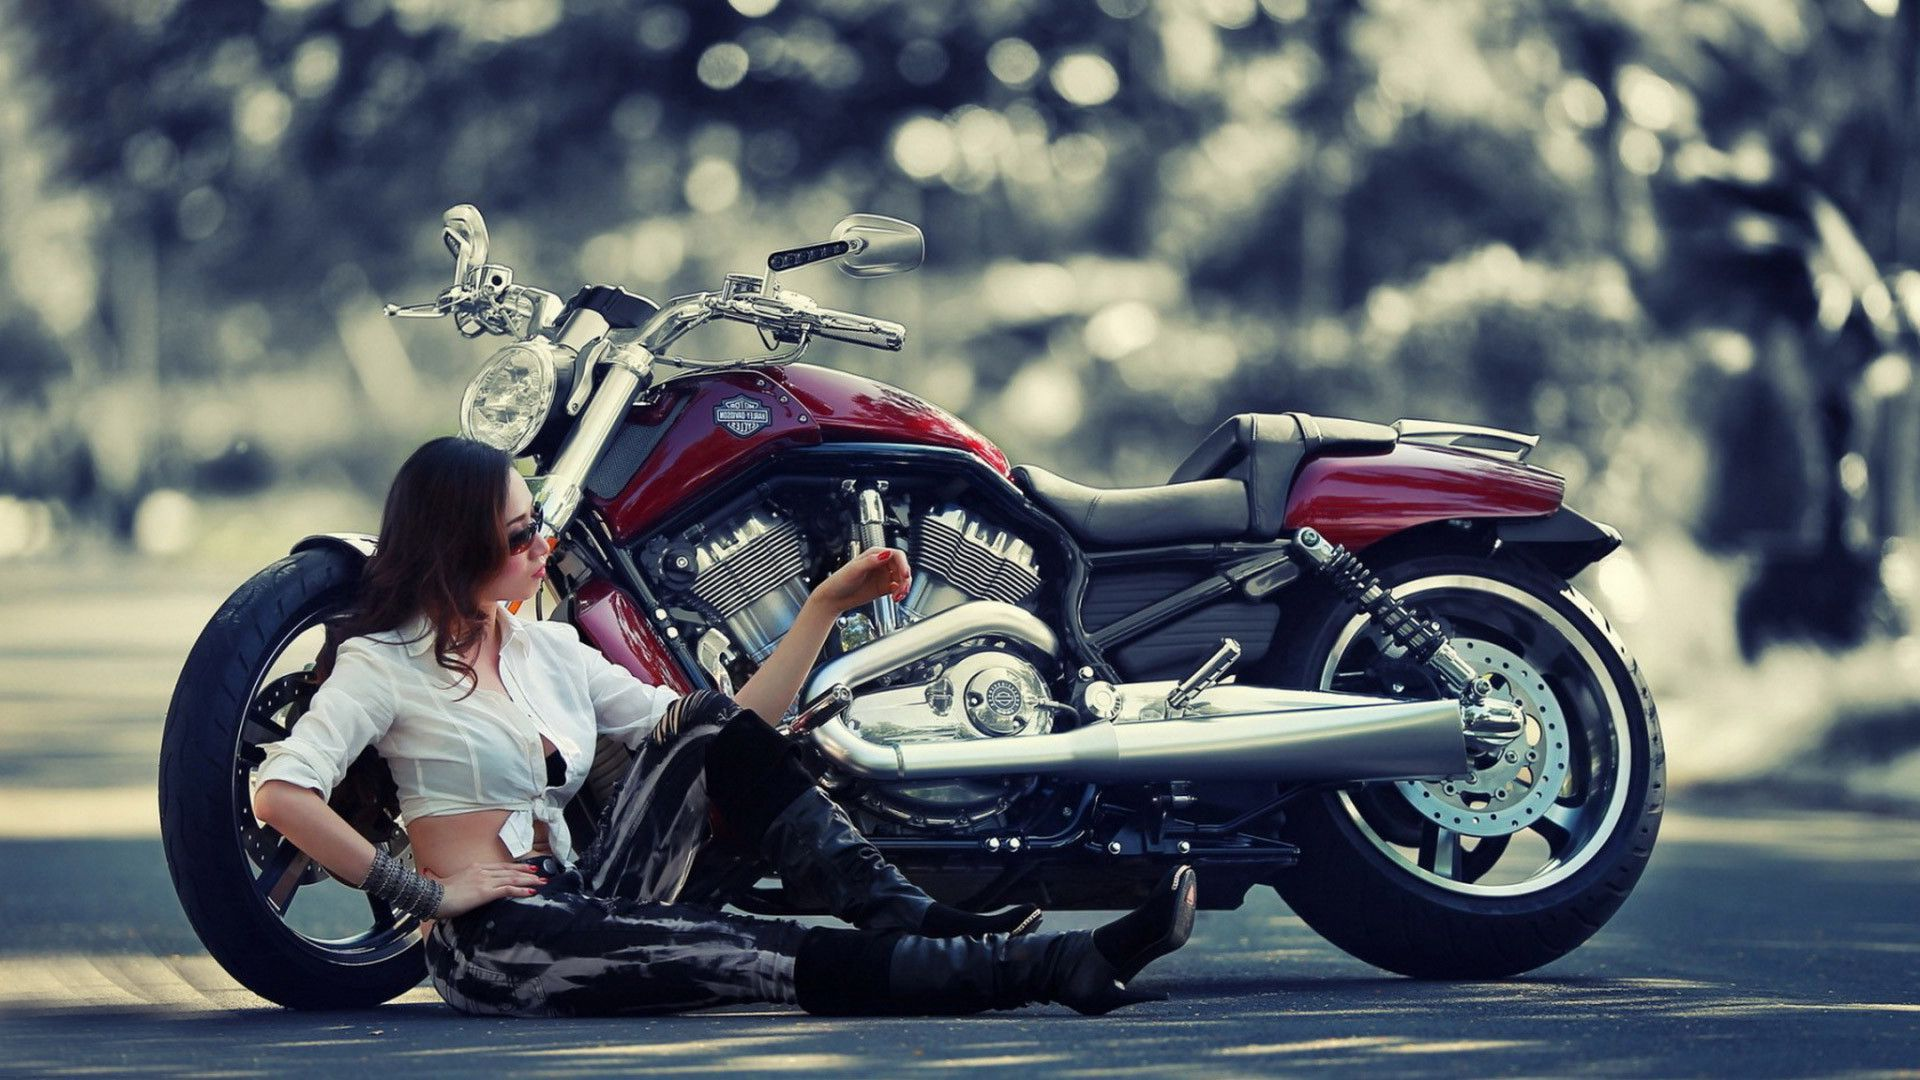 Harley Davidson Wallpapers 1920x1080 Free Wallpaper Screensavers